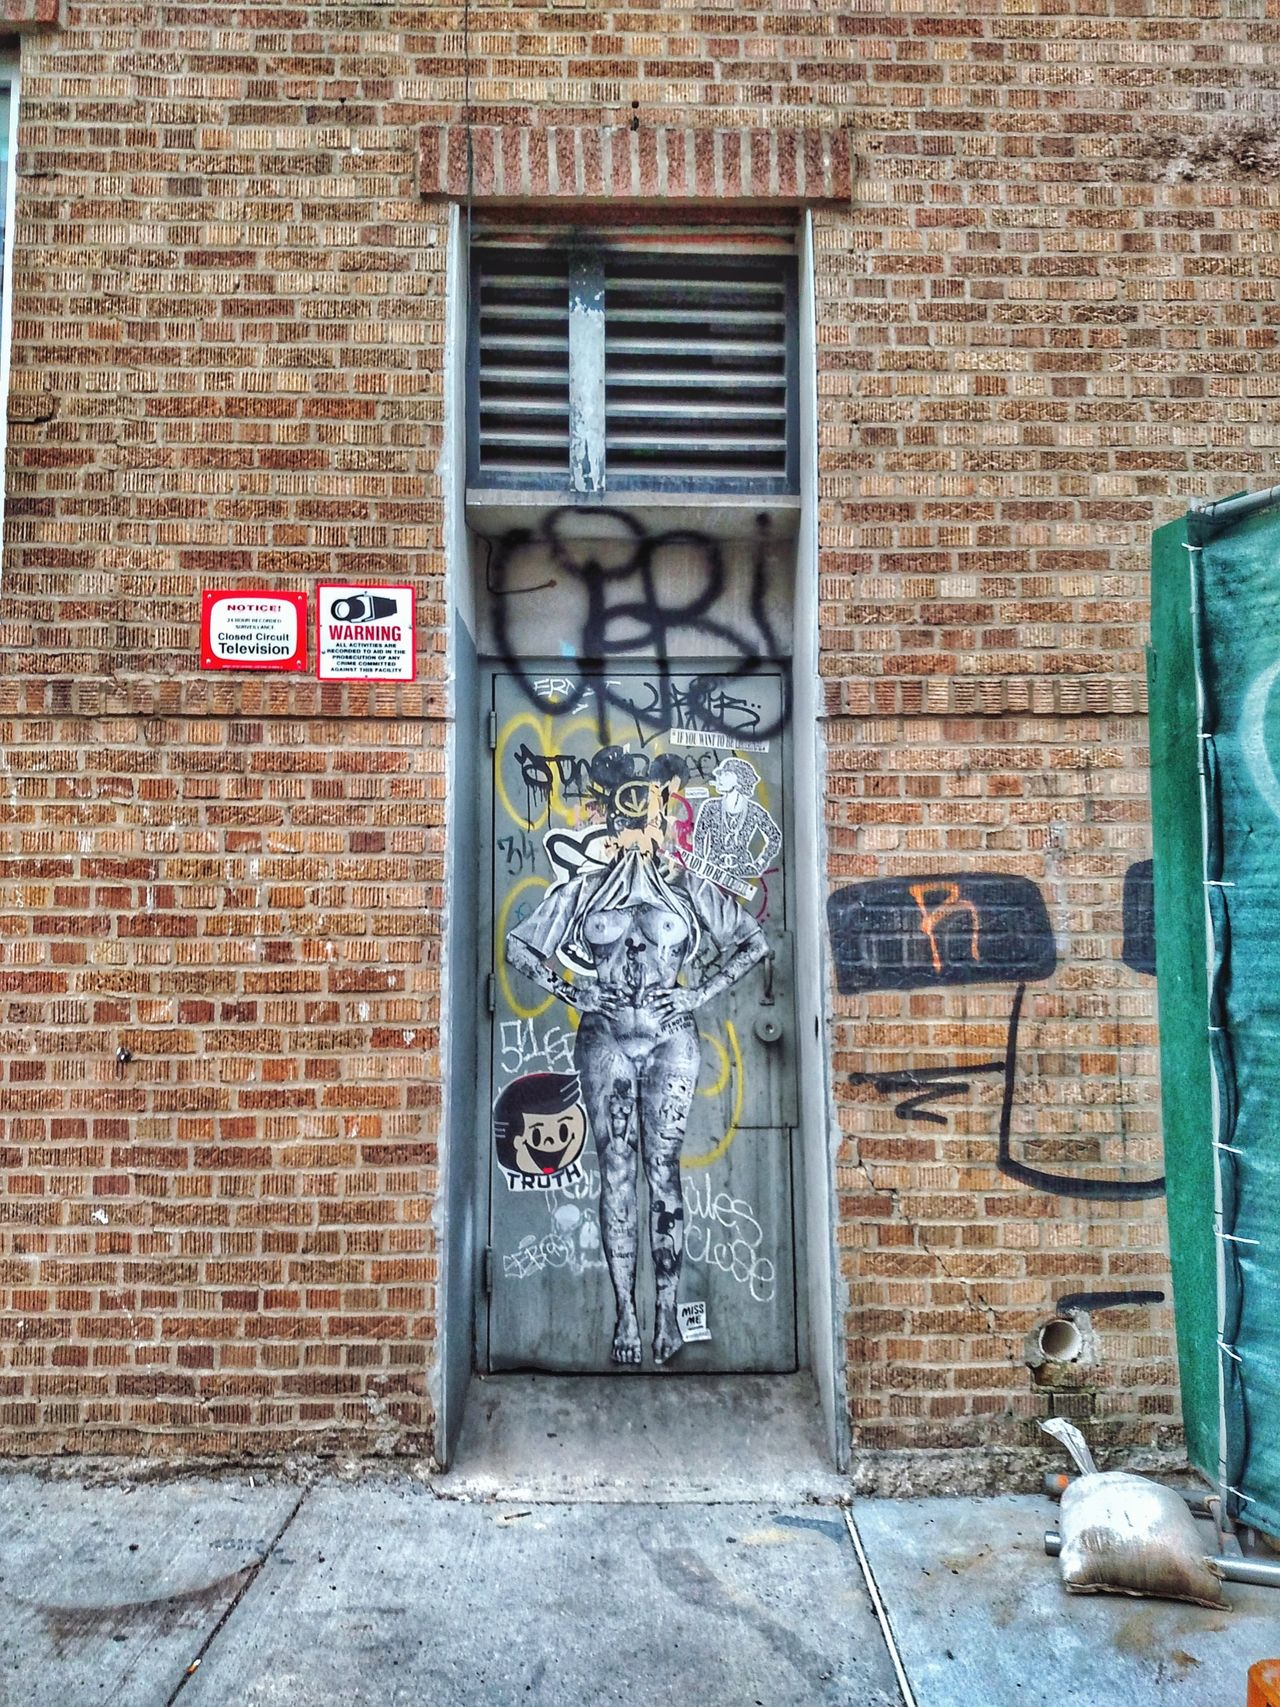 Architecture Built Structure Building Exterior Door No People Day Outdoors No Parking Sign Old Buildings Brick Wall City New York City Art NYC New York Graffiti Williamsburg Brooklyn Urban Urban Art Wall - Building Feature Wall Art Wall Wall Murals Door Finding New Frontiers